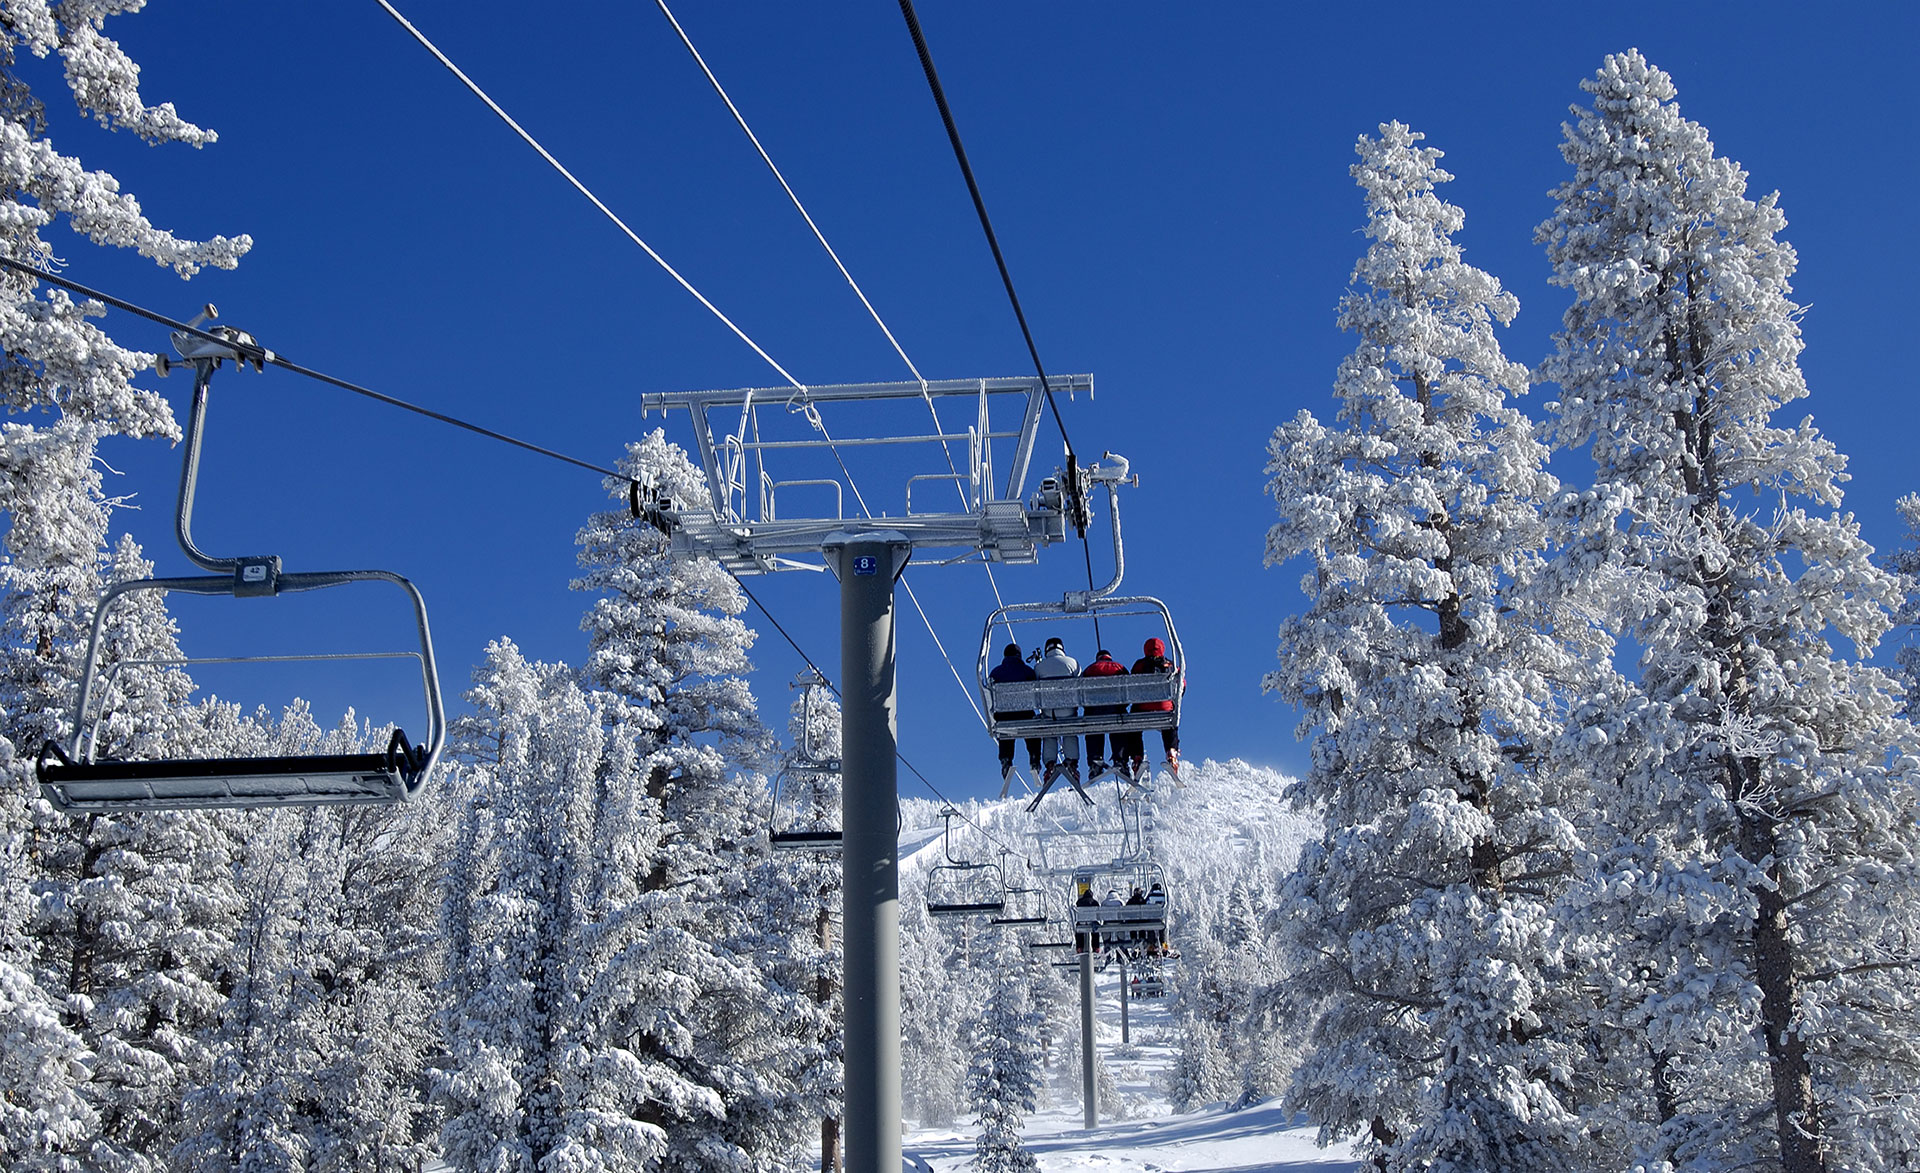 Take the ski lift to the top of the mountain and get ready to enjoy an epic skiing adventure.